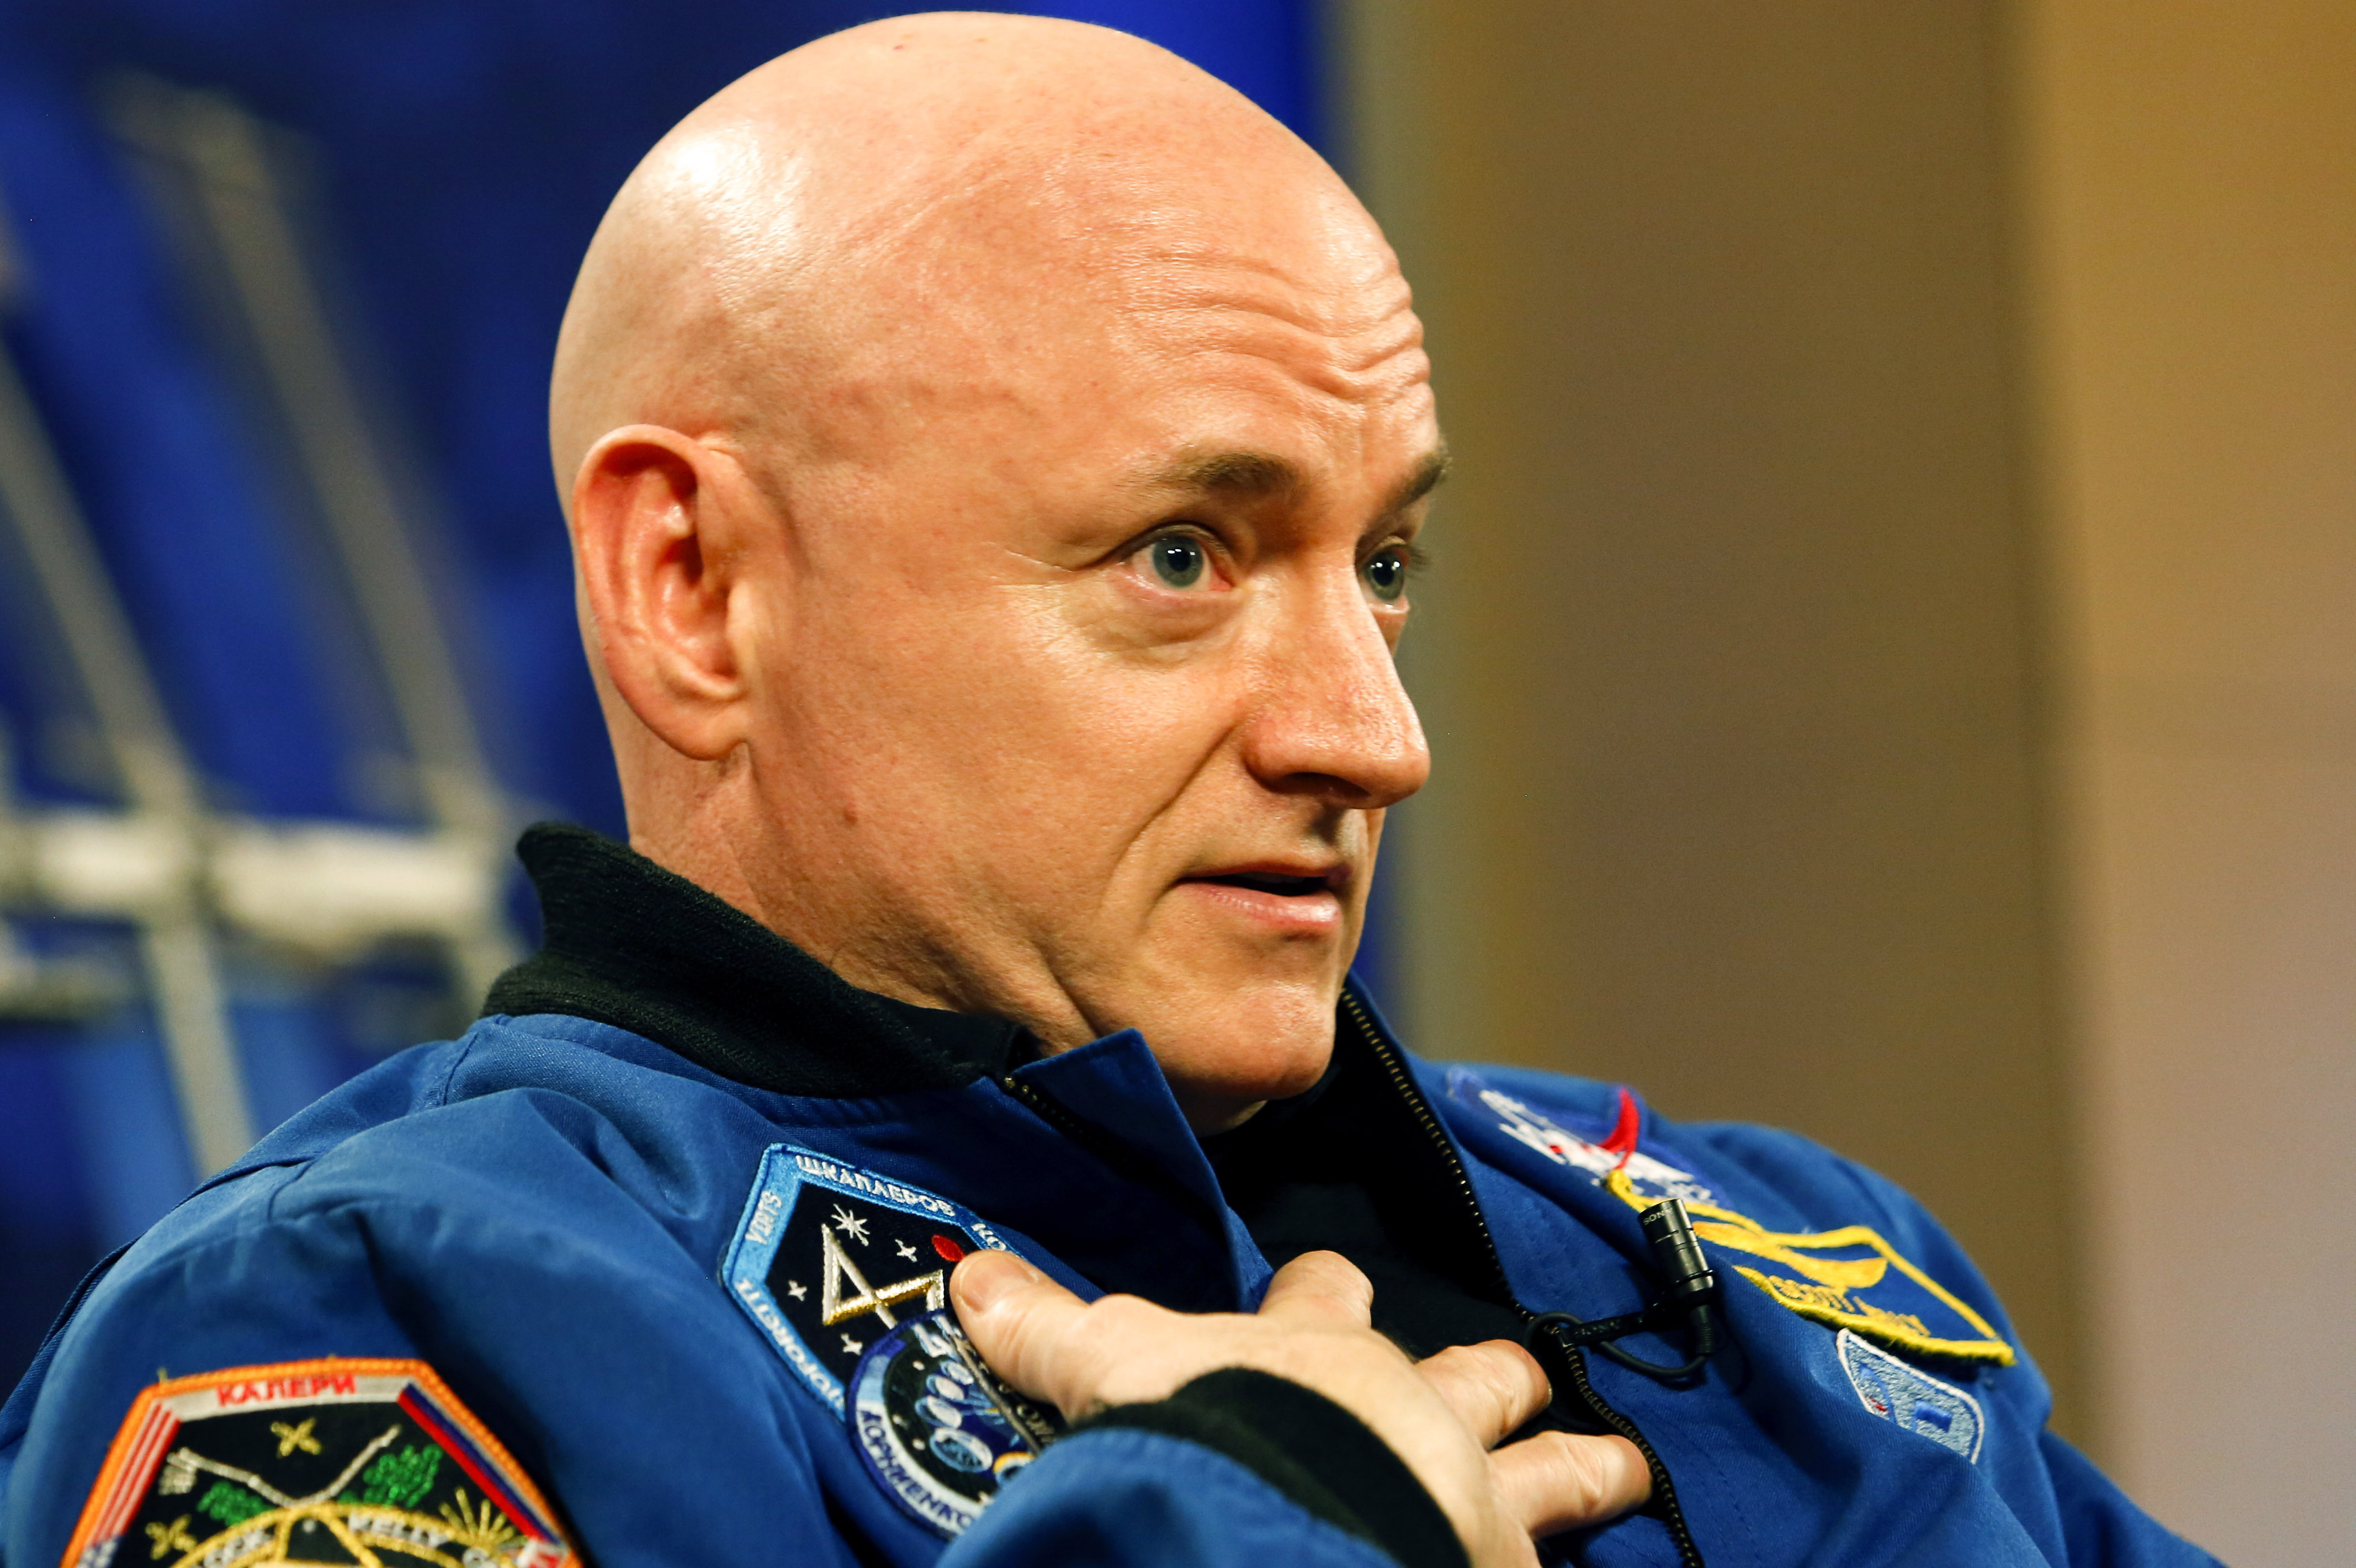 NASA Astronaut Scott Kelly speaks to the media after returning from a one year mission in space aboard the International Space Station, March 4, 2016 in Houston, Texas.